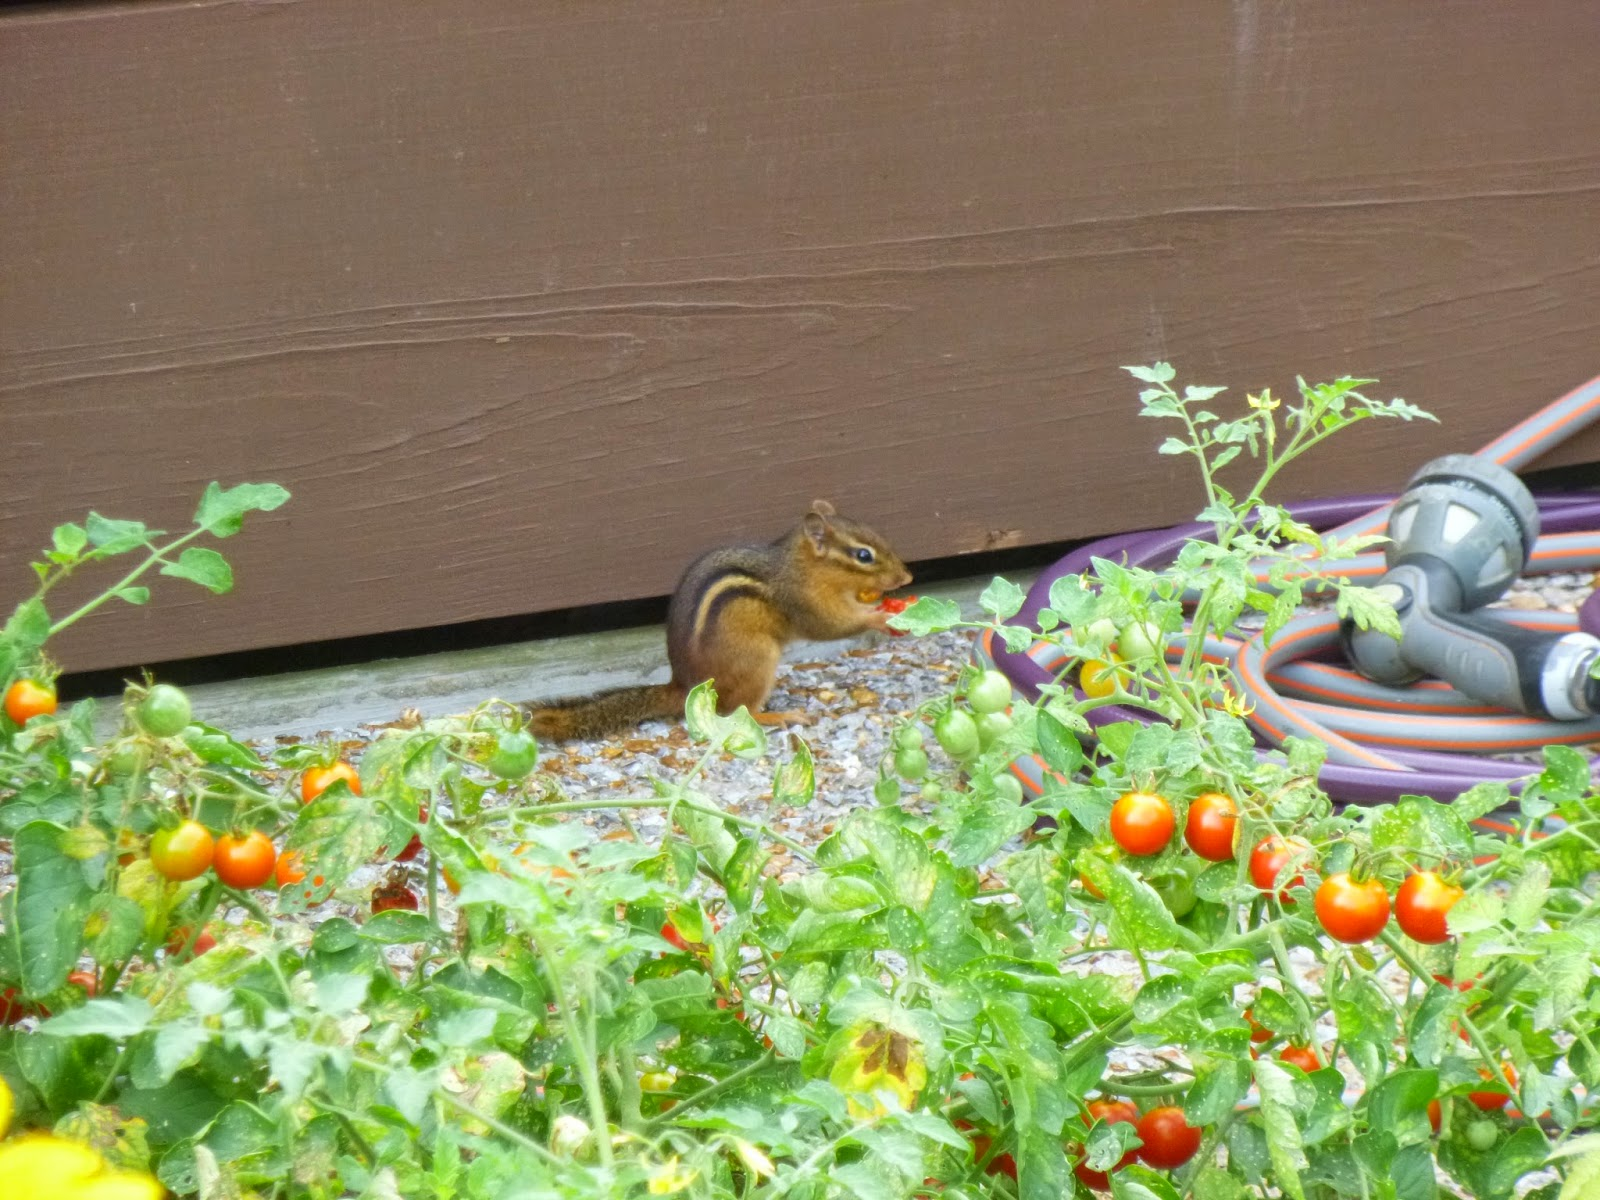 Chipmunk eating cherry tomato